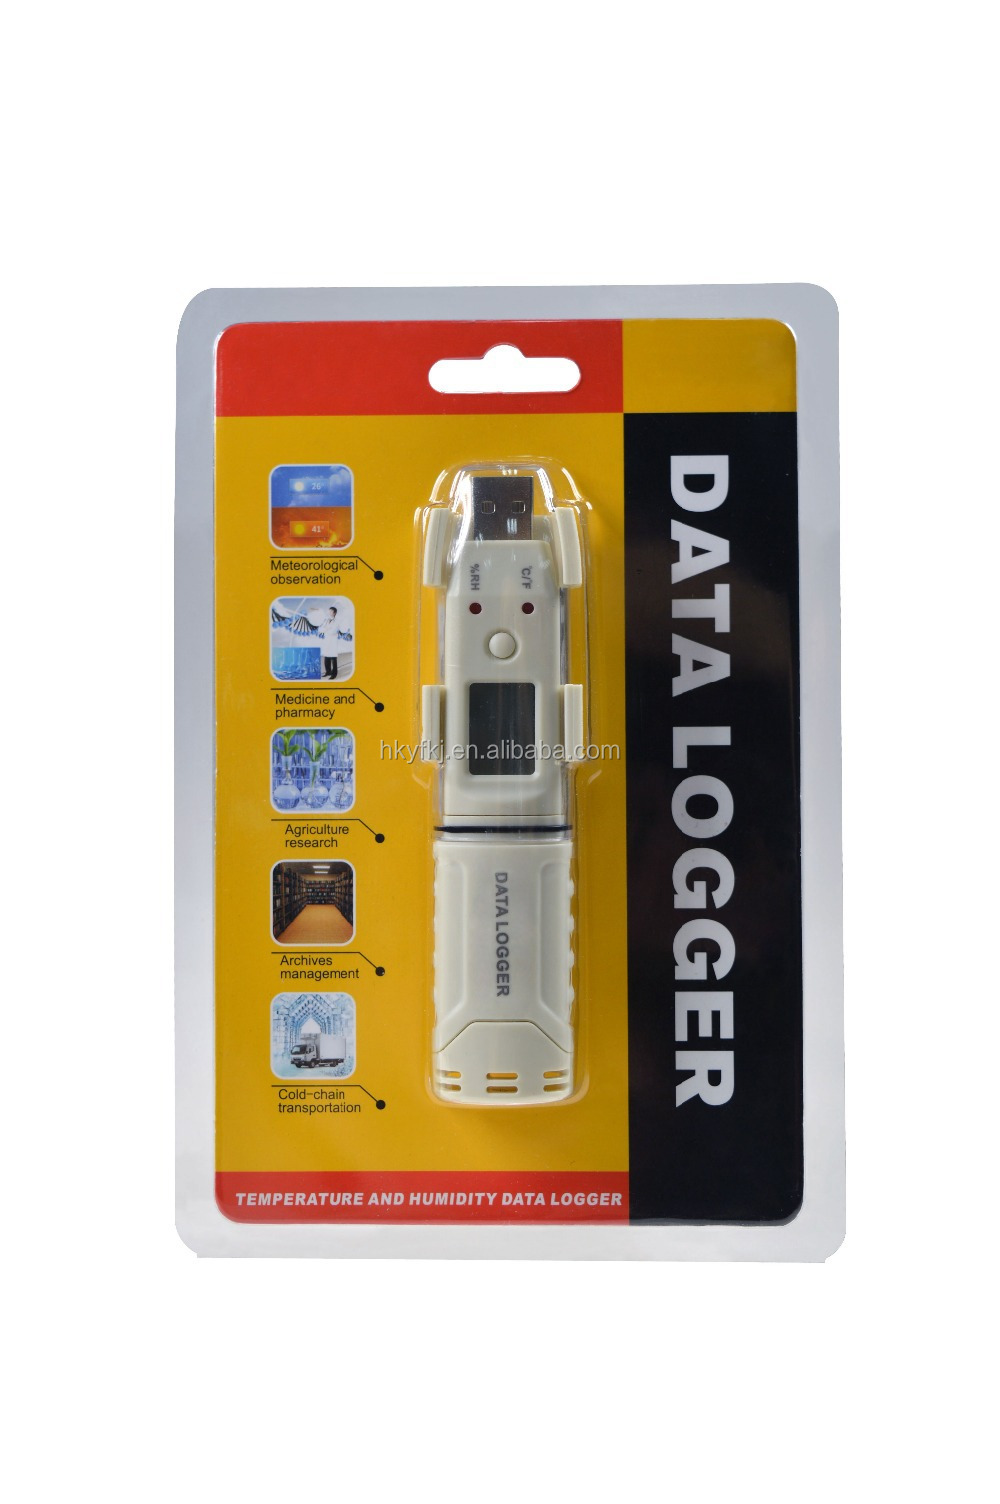 High Temperature Data Logger : High quality temperature humidity data logger wireless